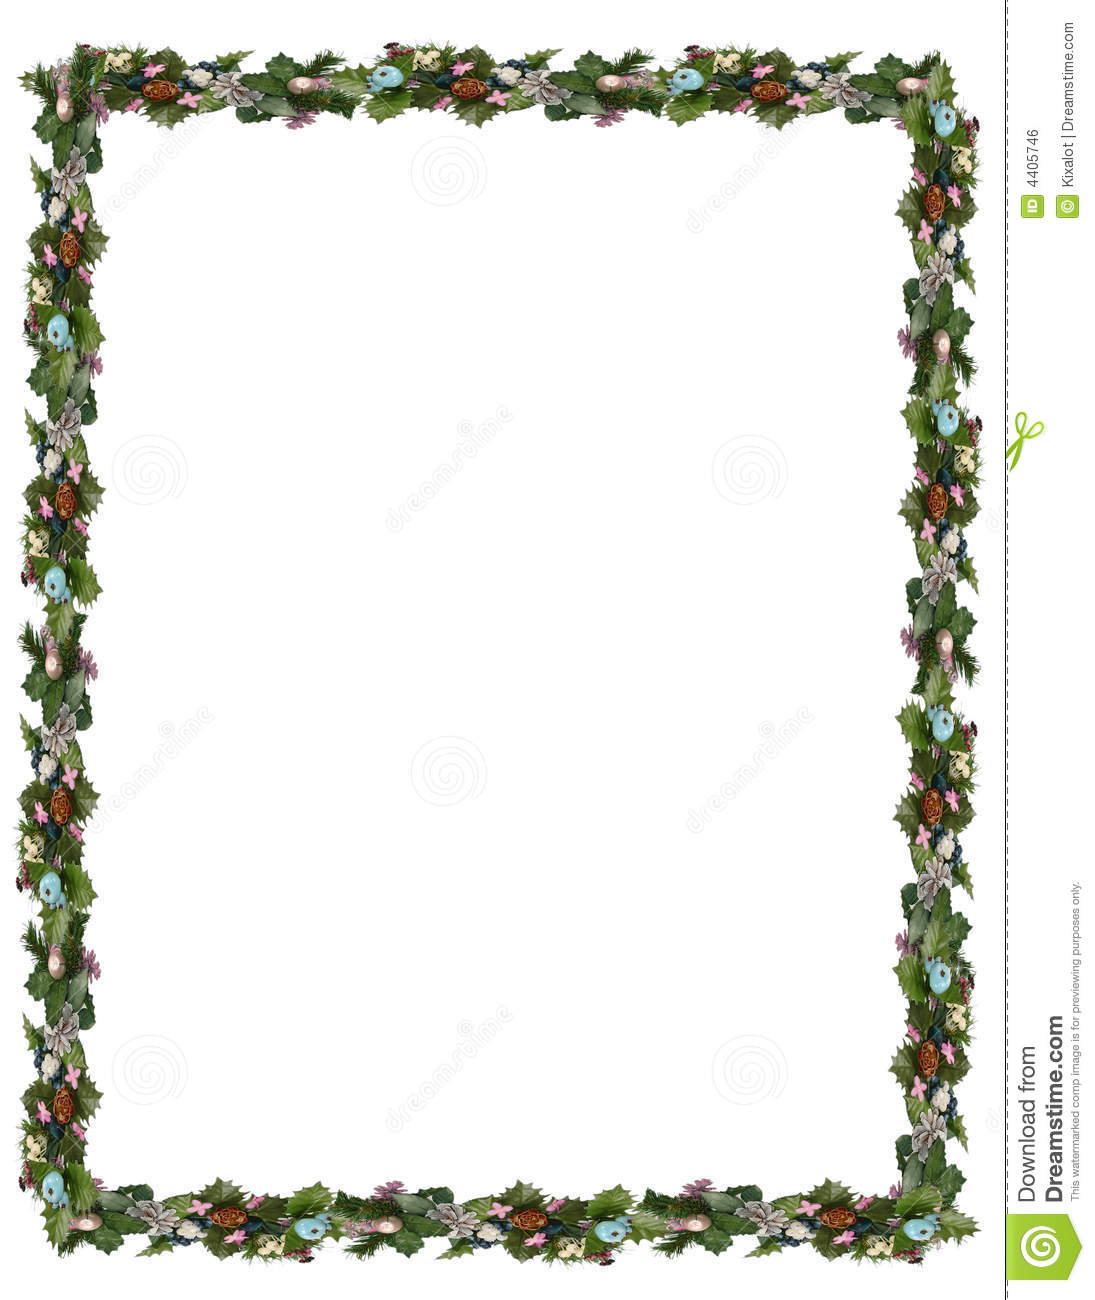 Holiday border clipart free 4 » Clipart Station.